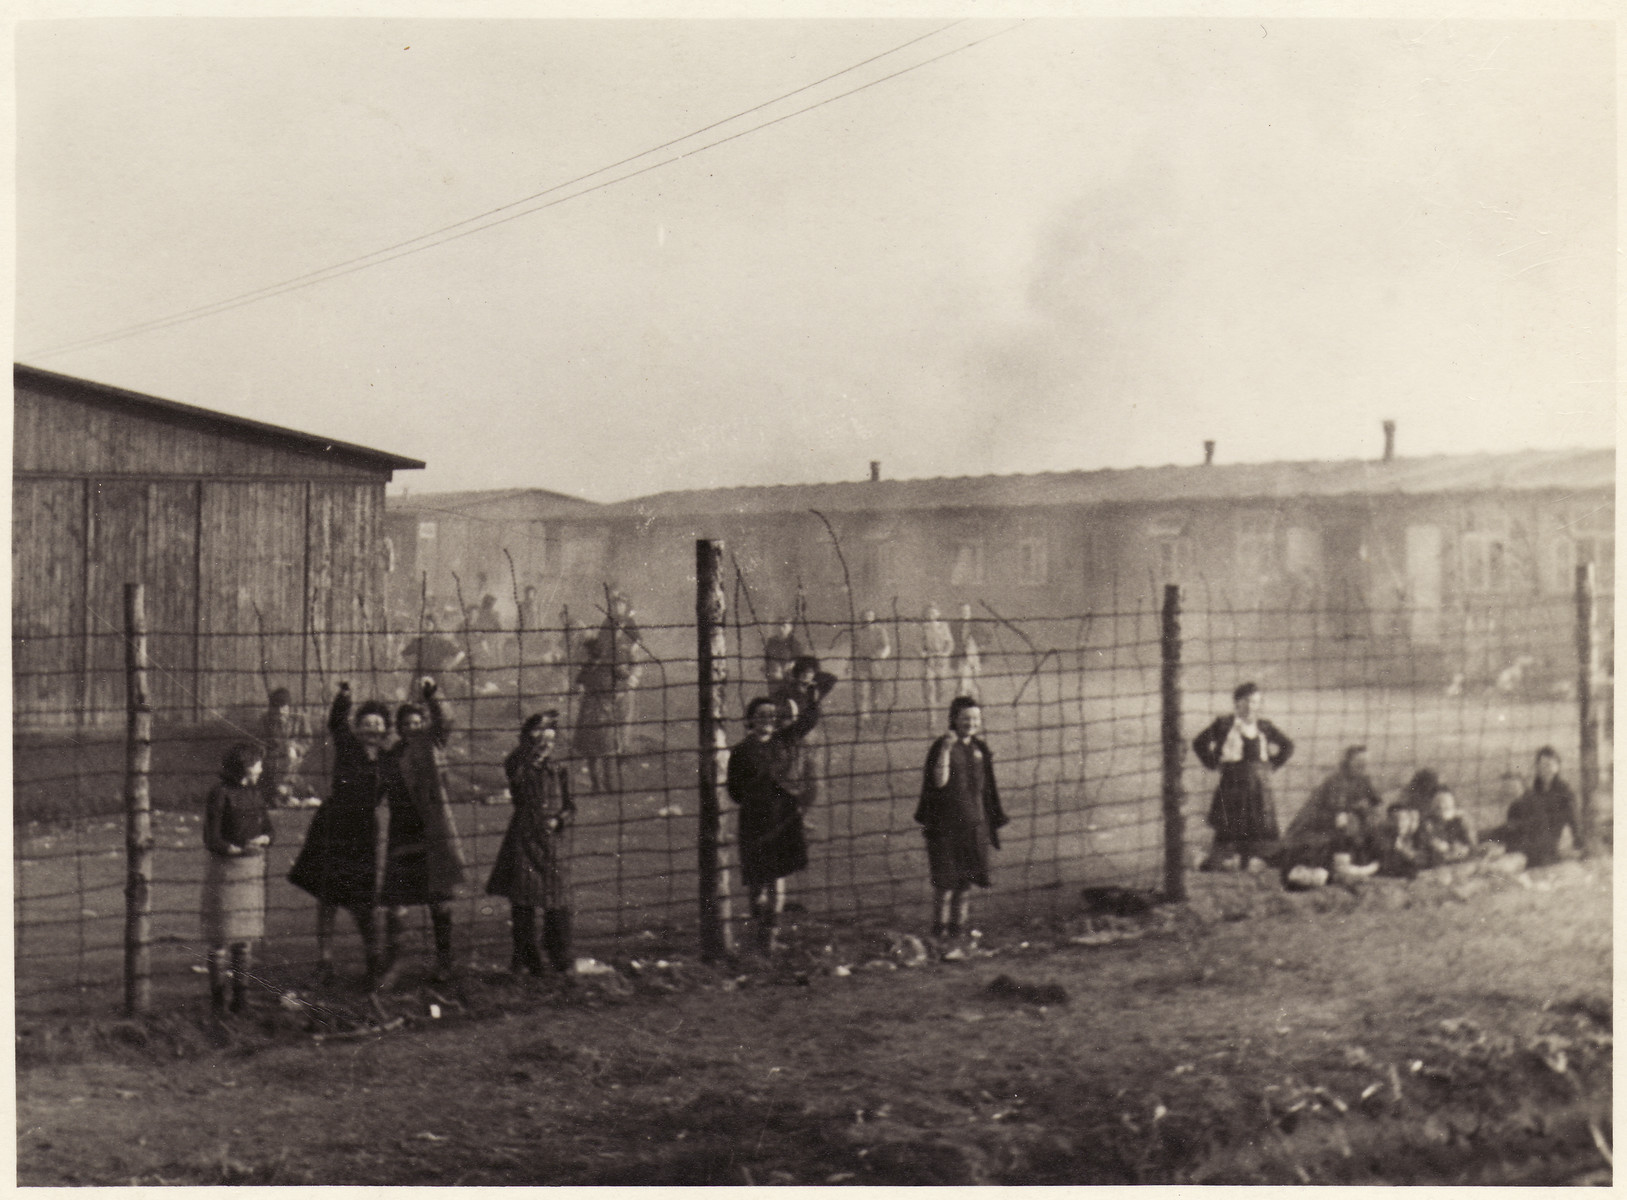 Women survivors of the Bergen-Belsen concentration camp stand and sit behind the fence of the camp.